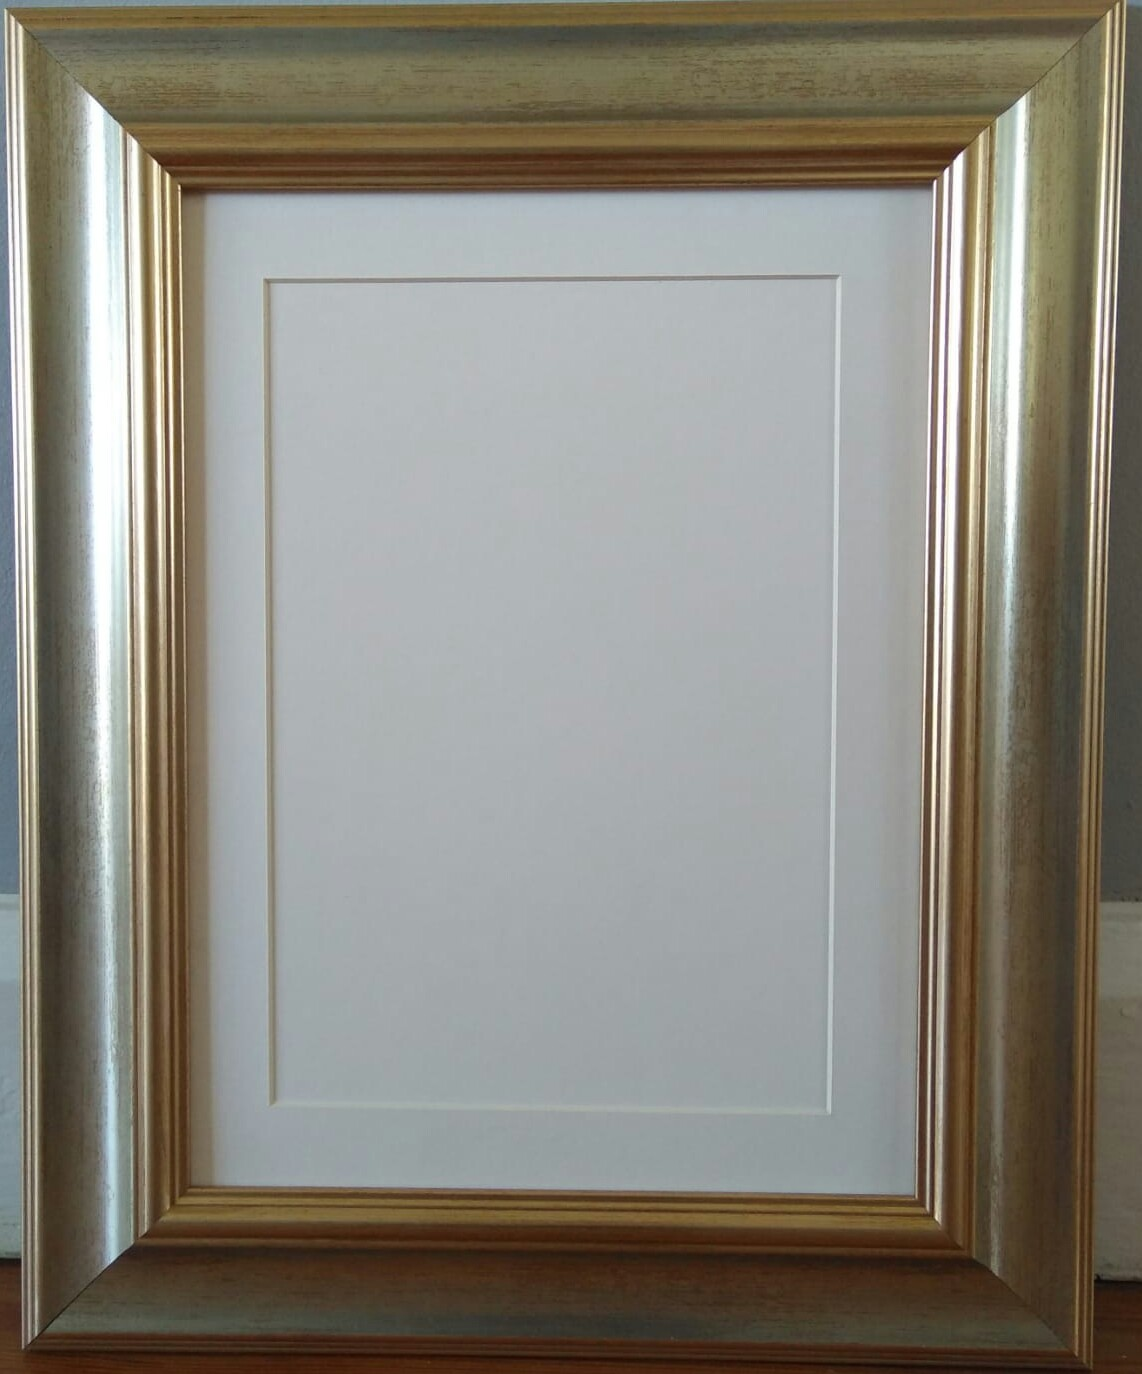 Photo / Picture frames for sale